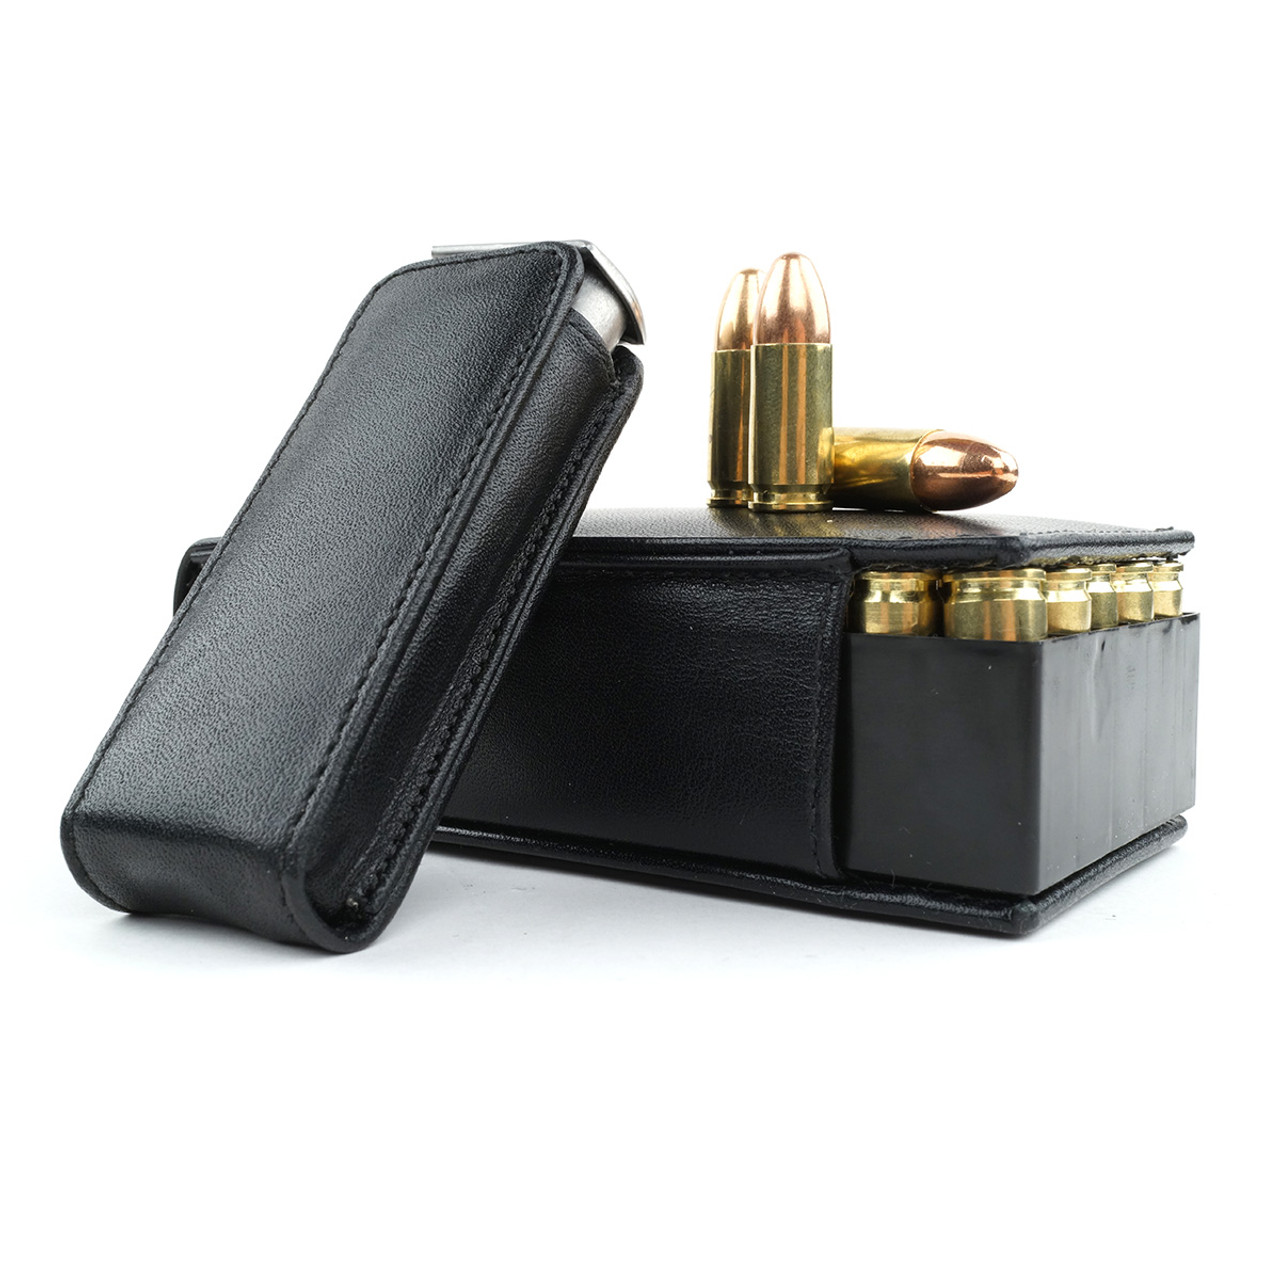 M&P 40c Leather Bullet Brick